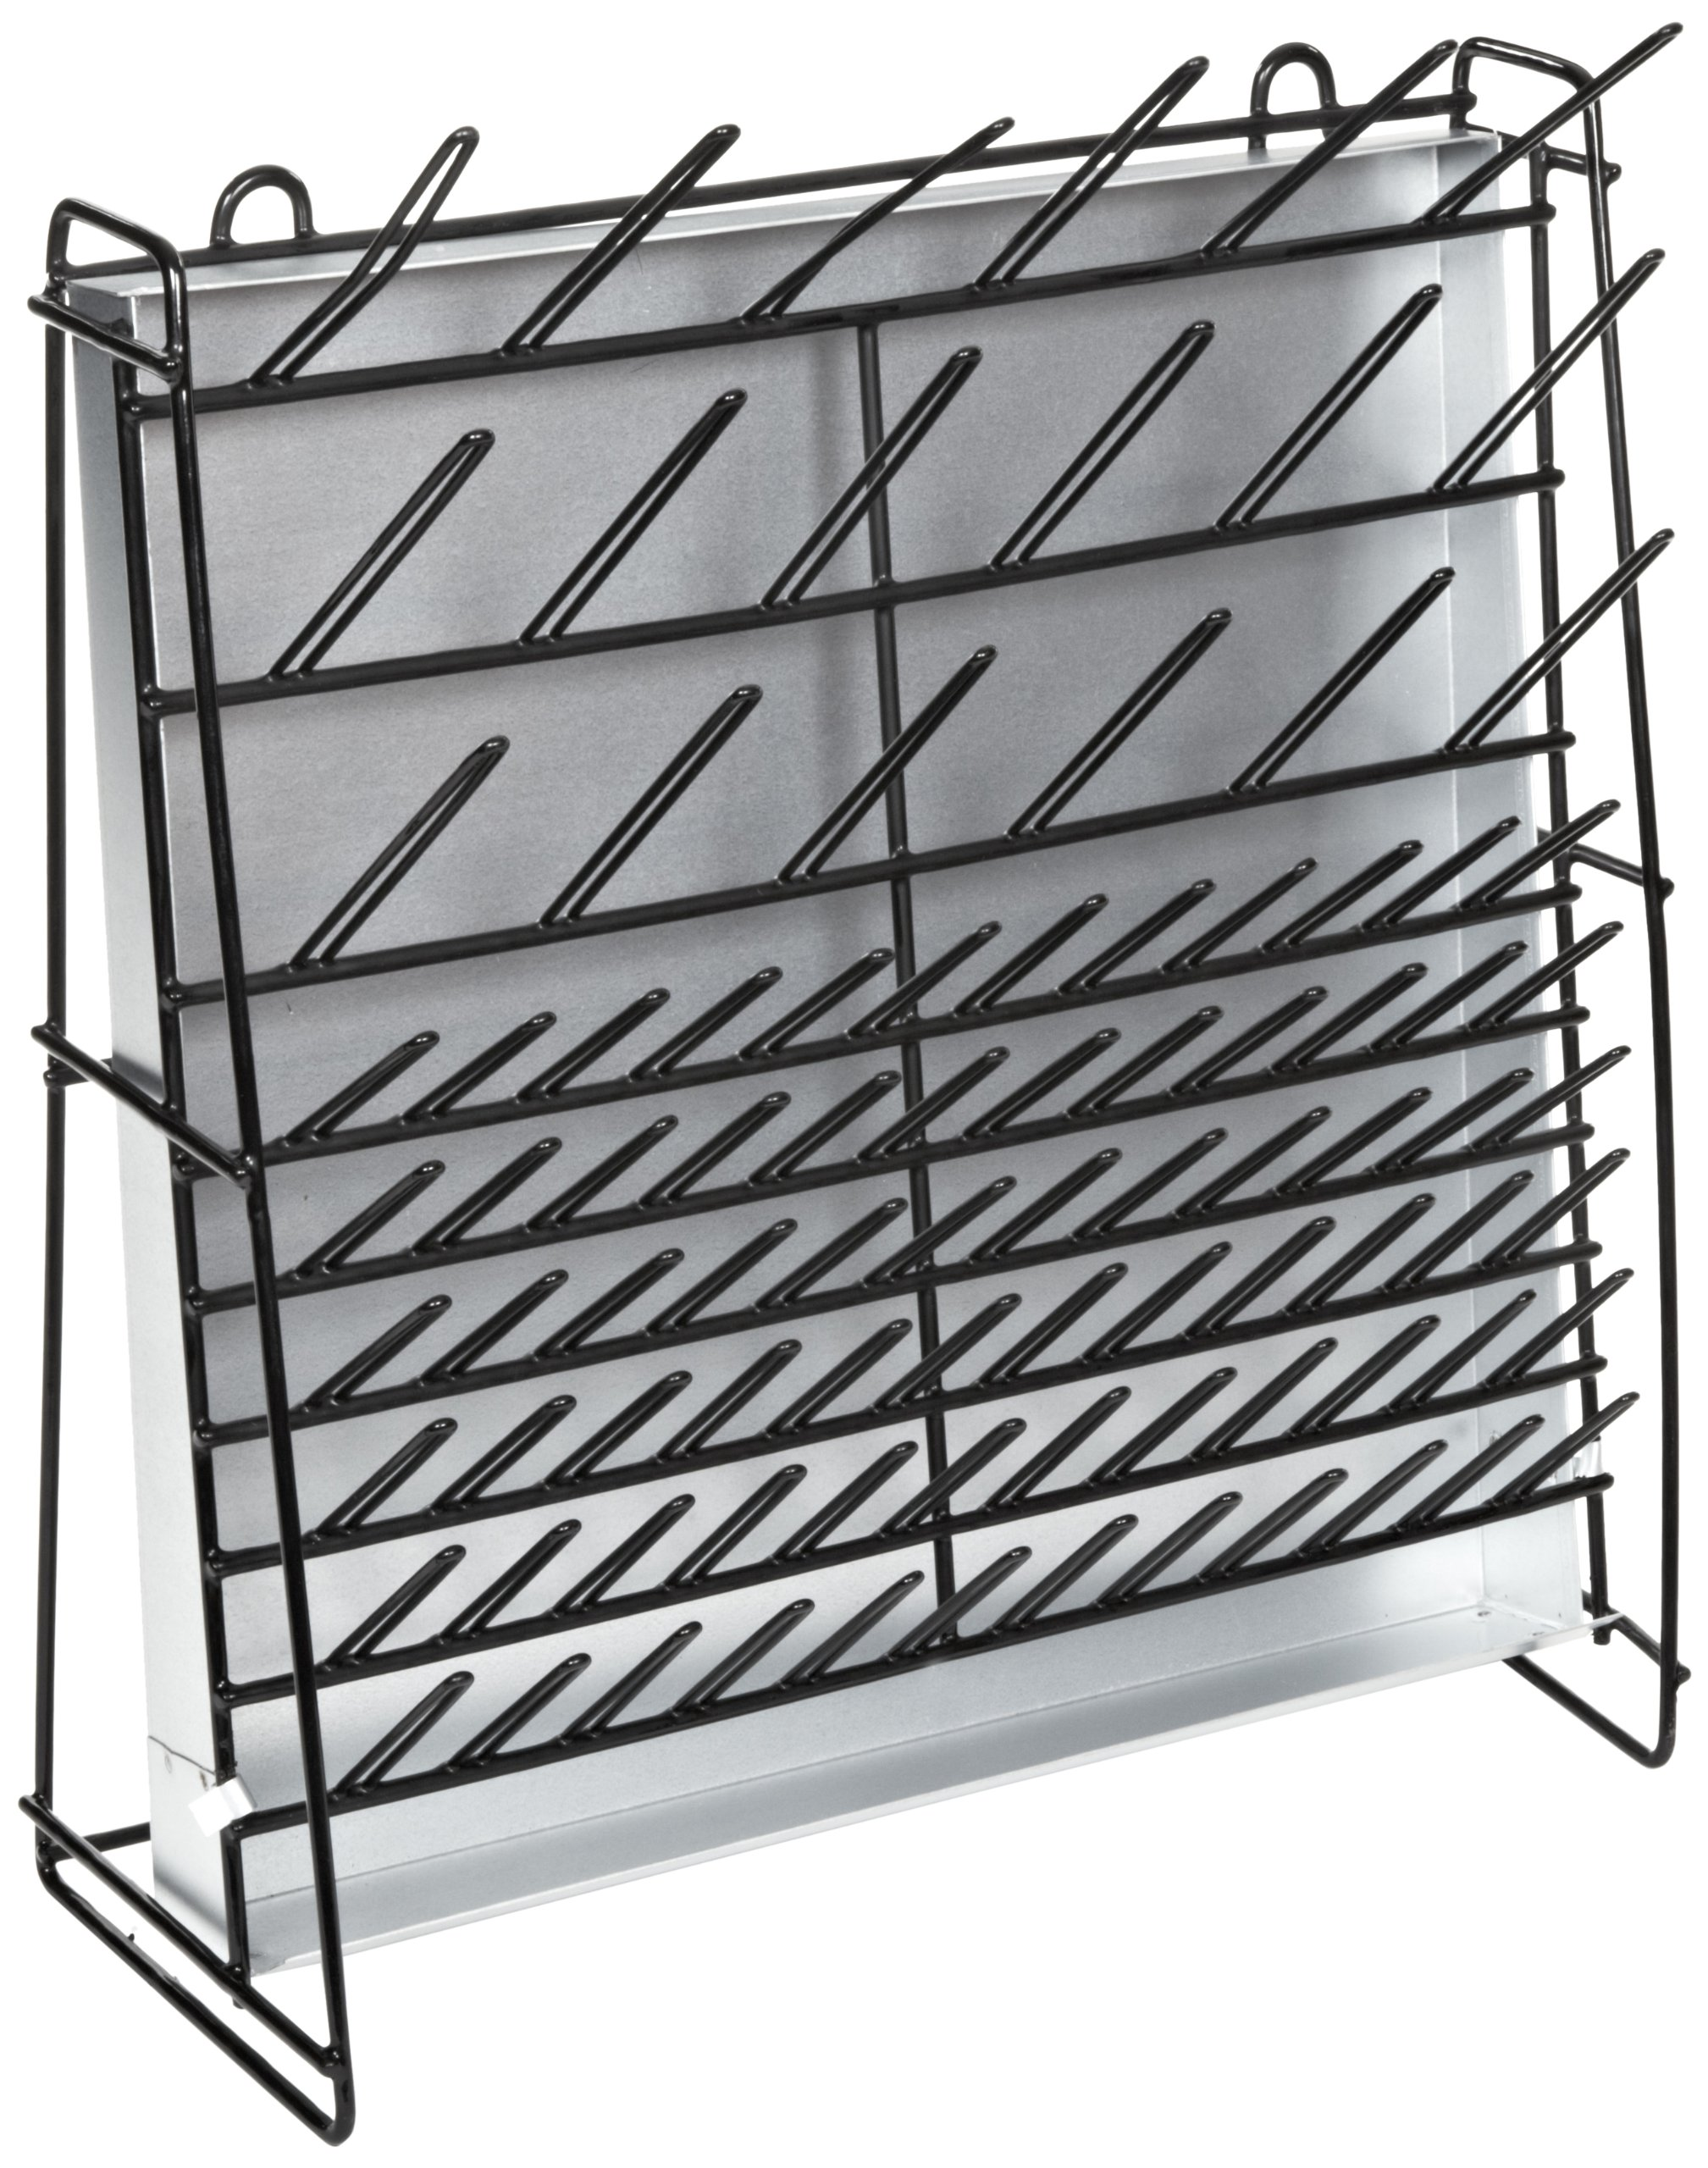 Accurate Wirecraft 901807BK Vinyl Coated Steel Wire Draining and Drying Rack, 47cm Length x 18cm Width x 48cm Height, Black